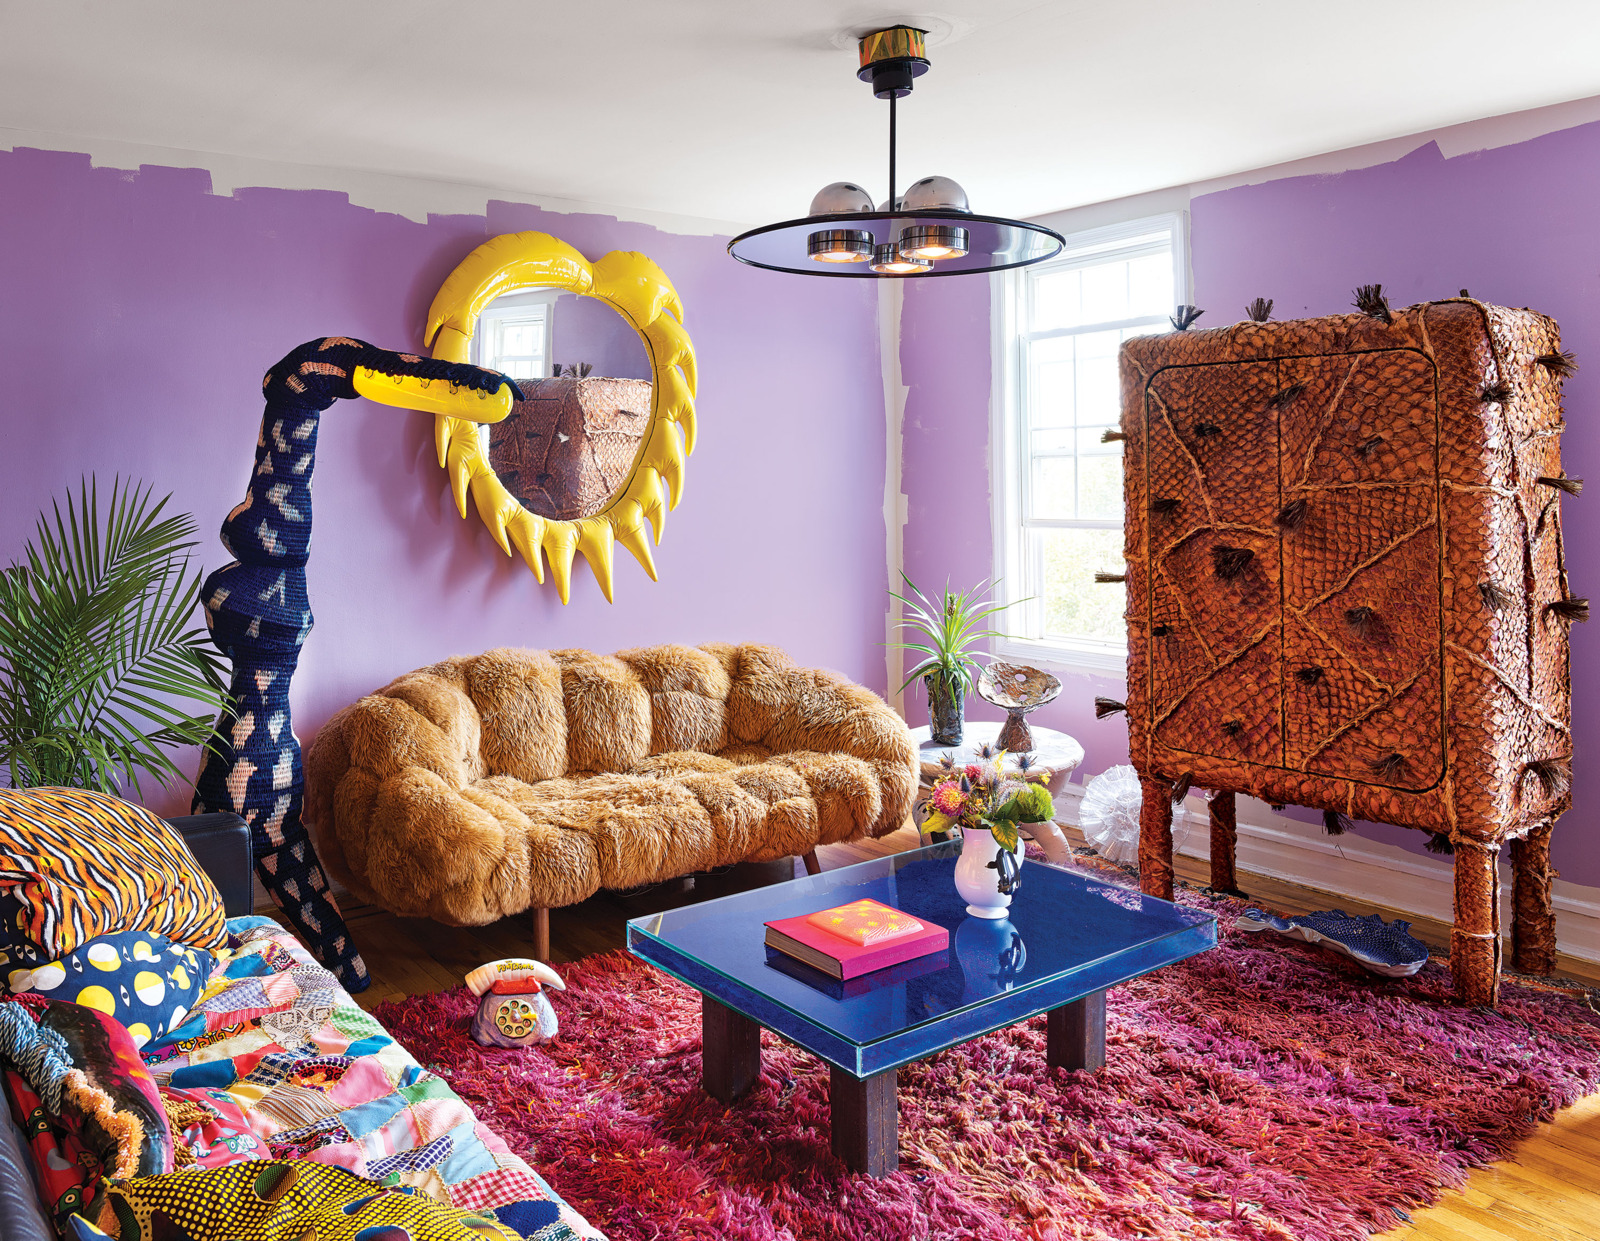 ArtistMisha Kahn states that he needs to beoverwhelmed by how colorful everything is in a design project. design project A colorful design project by Misha Kahn A colorful design project by Misha Kahn I Lobo you 2